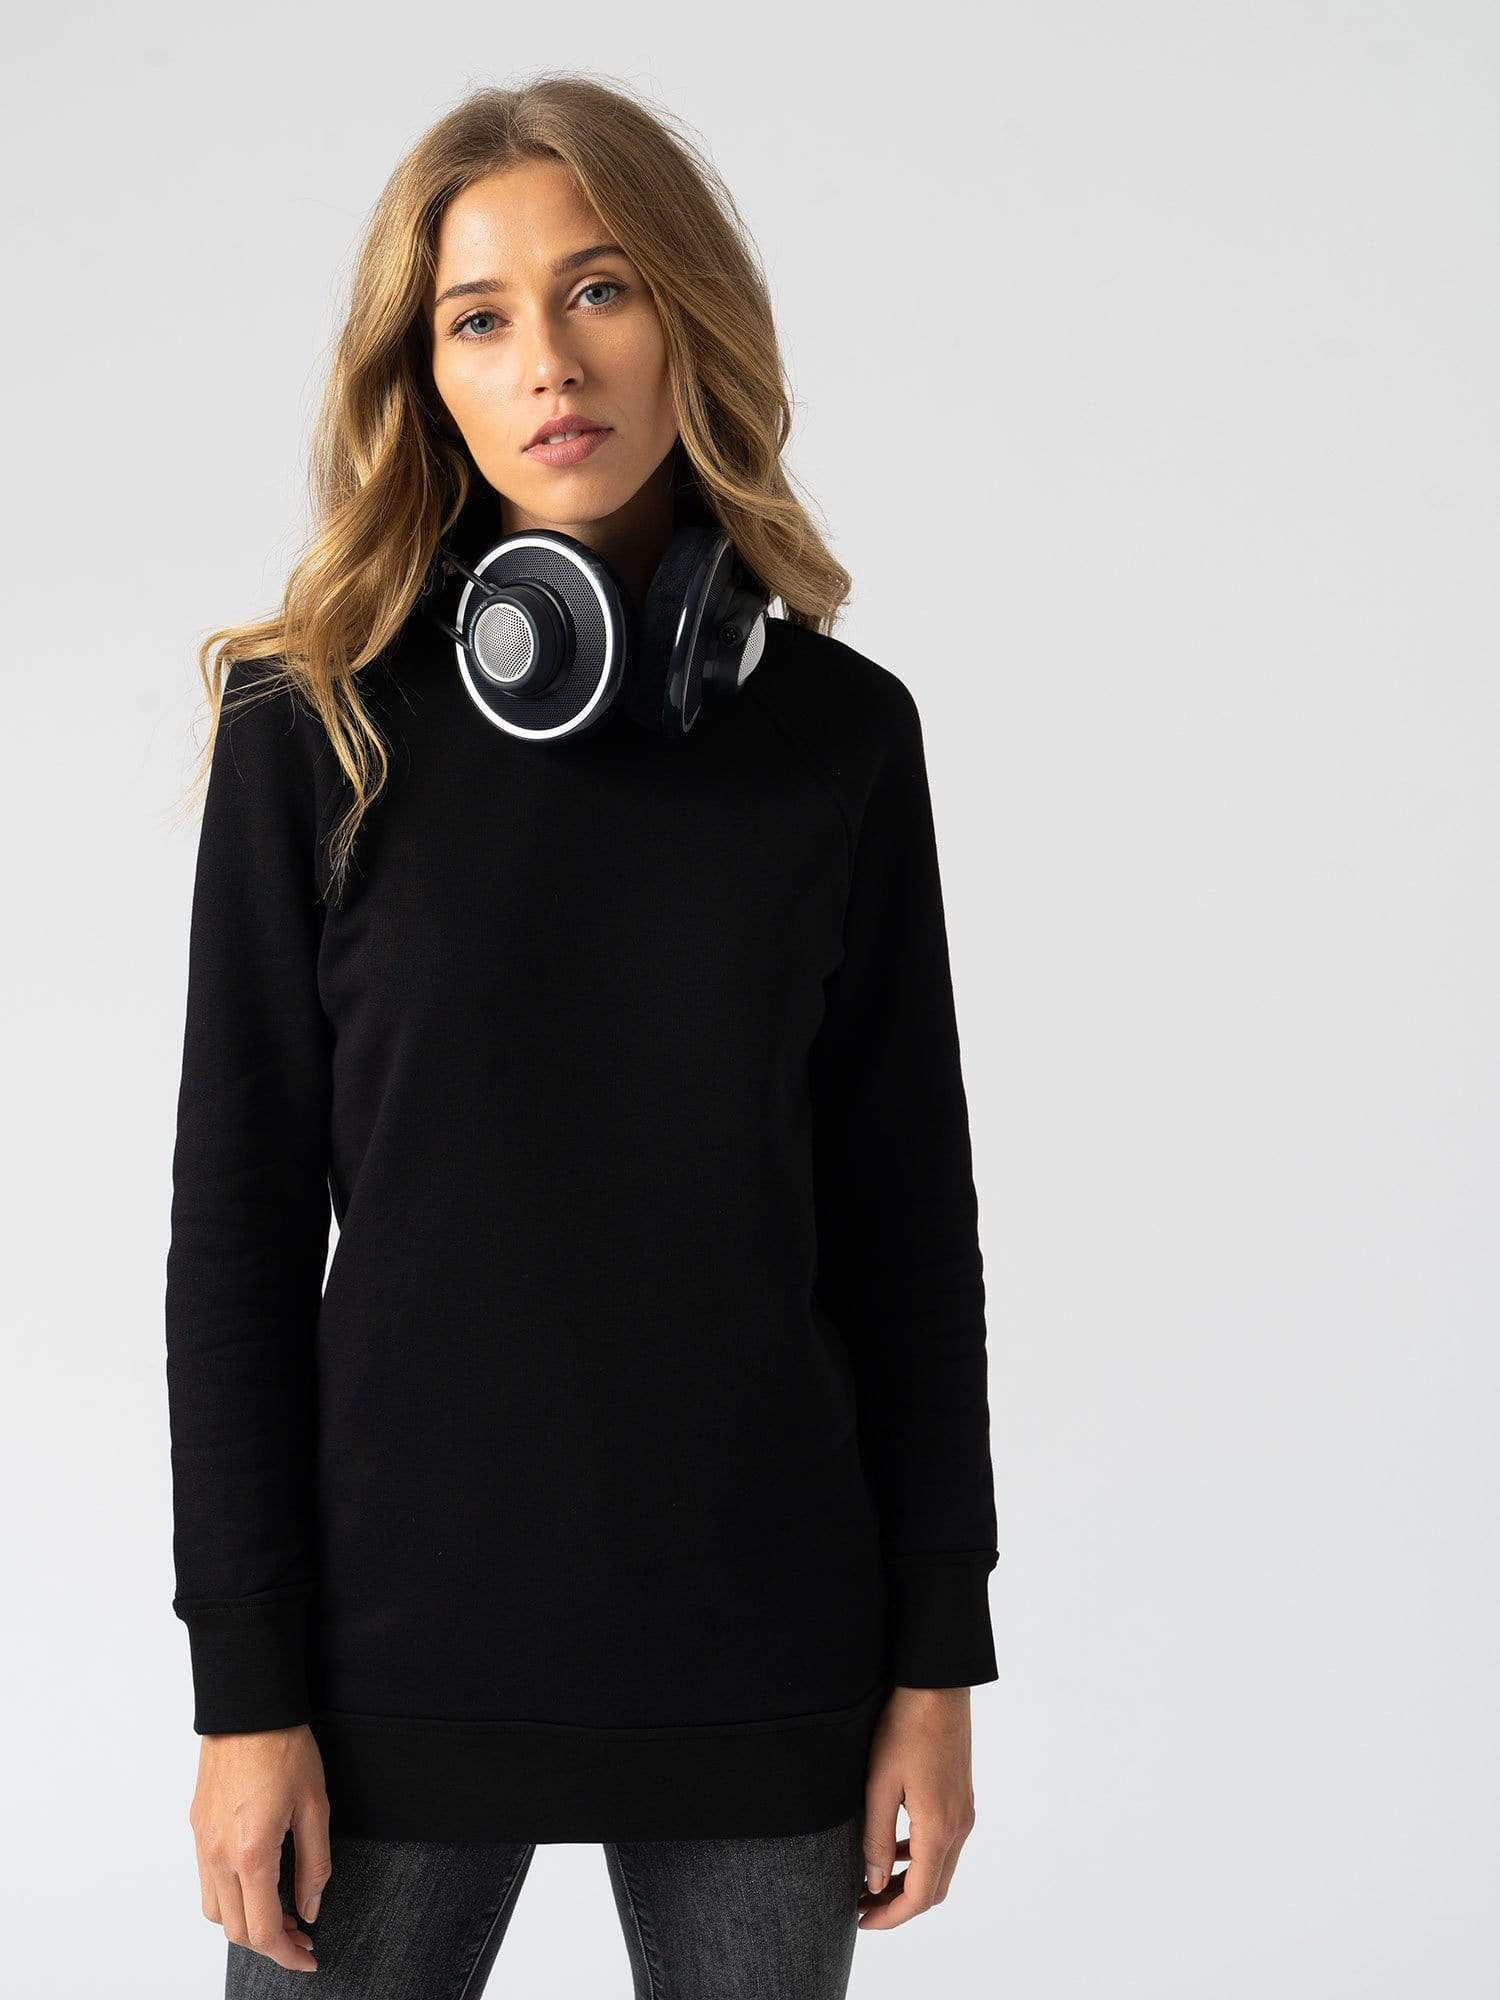 The Sweater - Black